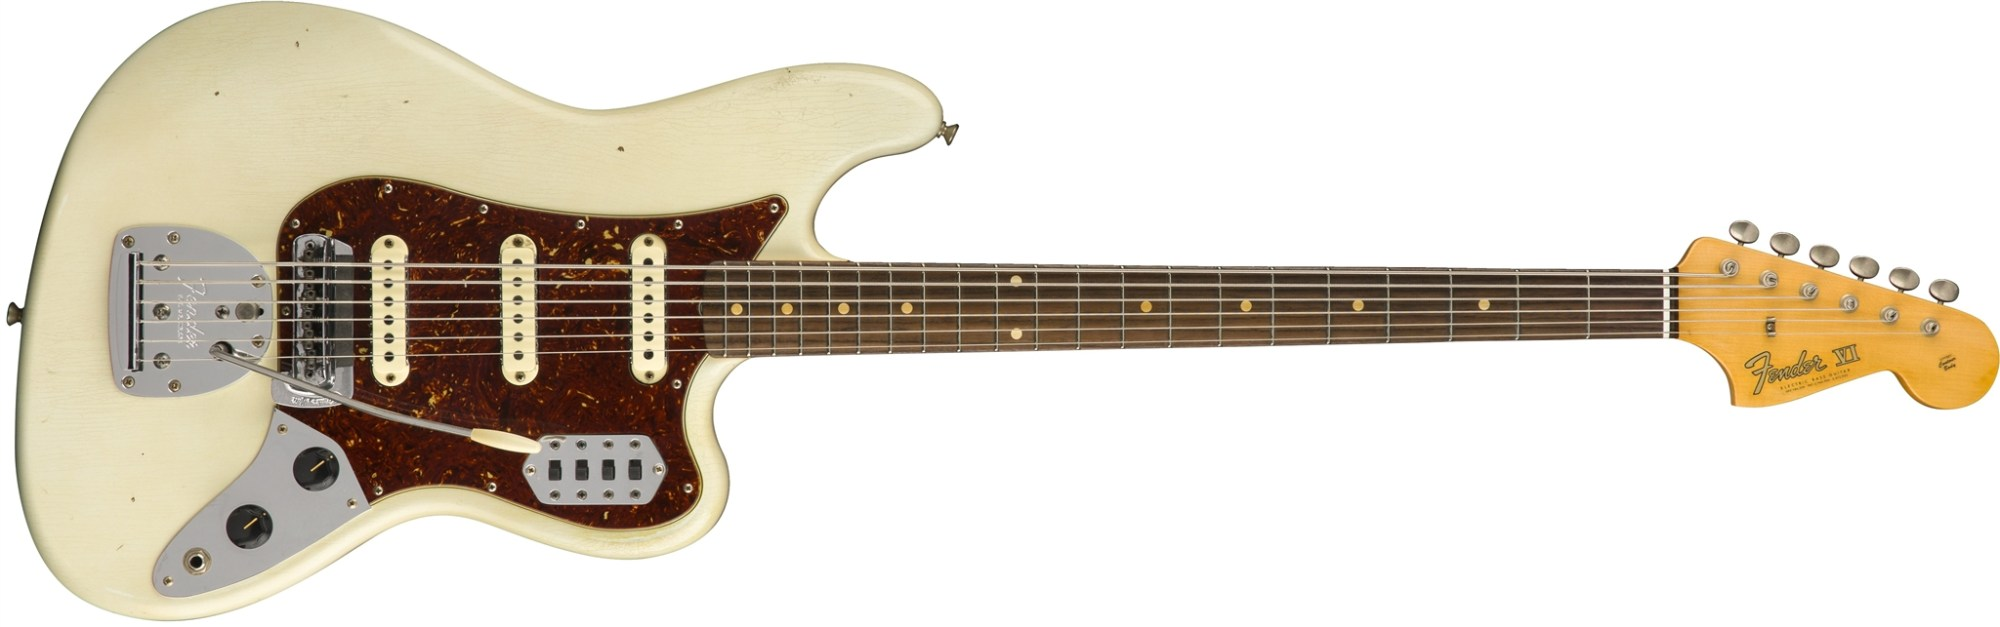 hight resolution of don t let this jaguar related guitar fool you she s an octave below a regular six string and is called a bass for a reason